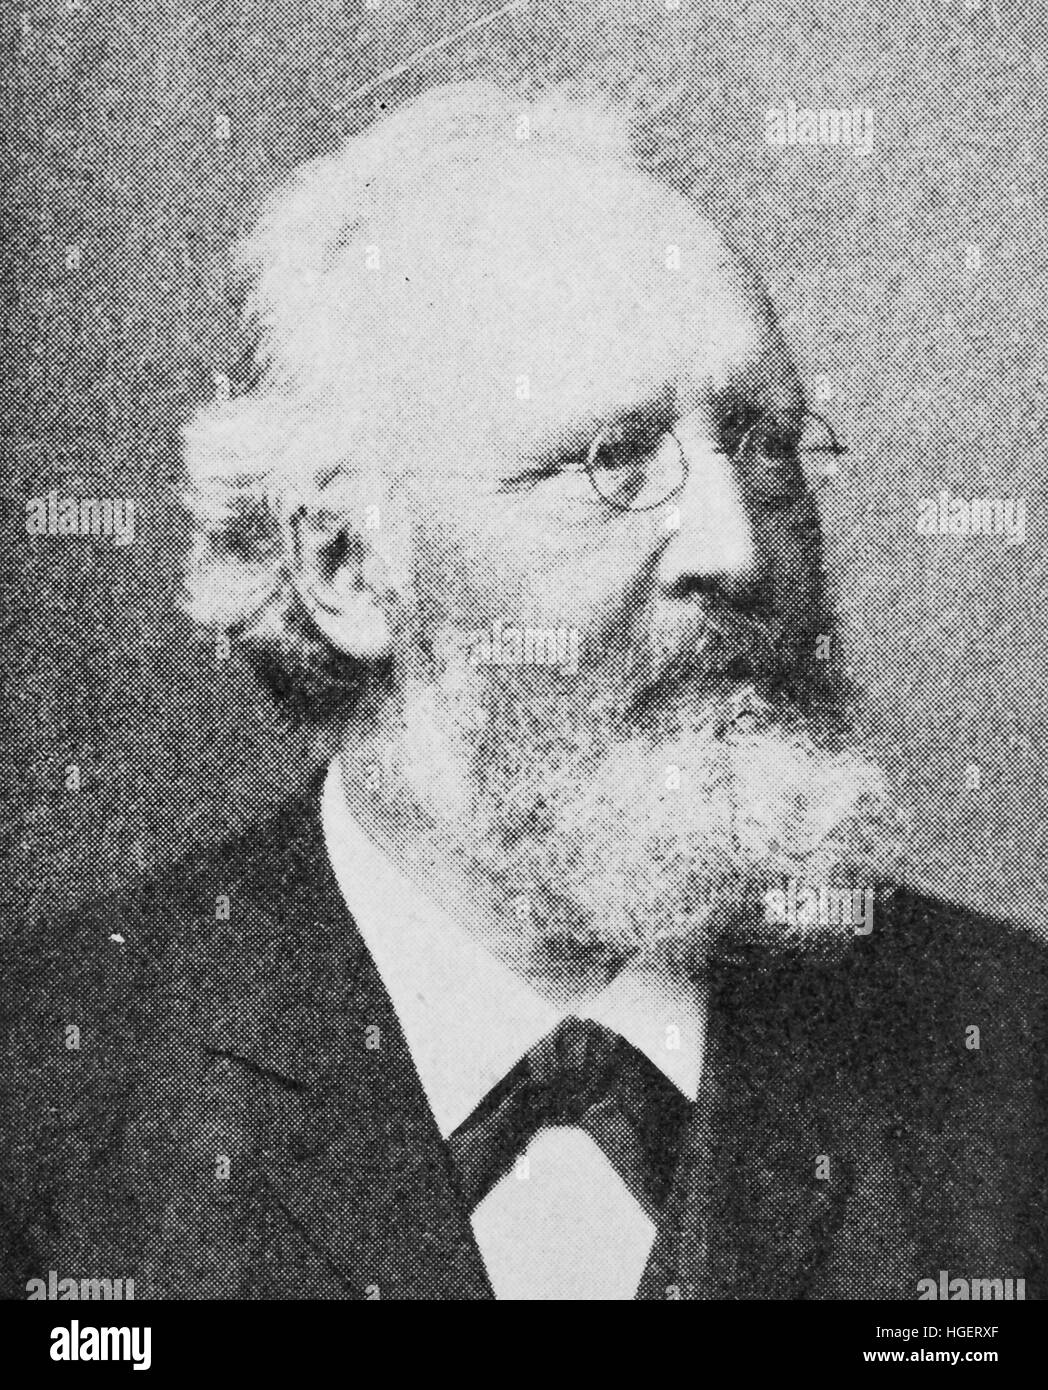 Johannes Ranke, 23 August 1836 - 26 July 1916, was a German physiologist and anthropologist, reproduction of a photo - Stock Image